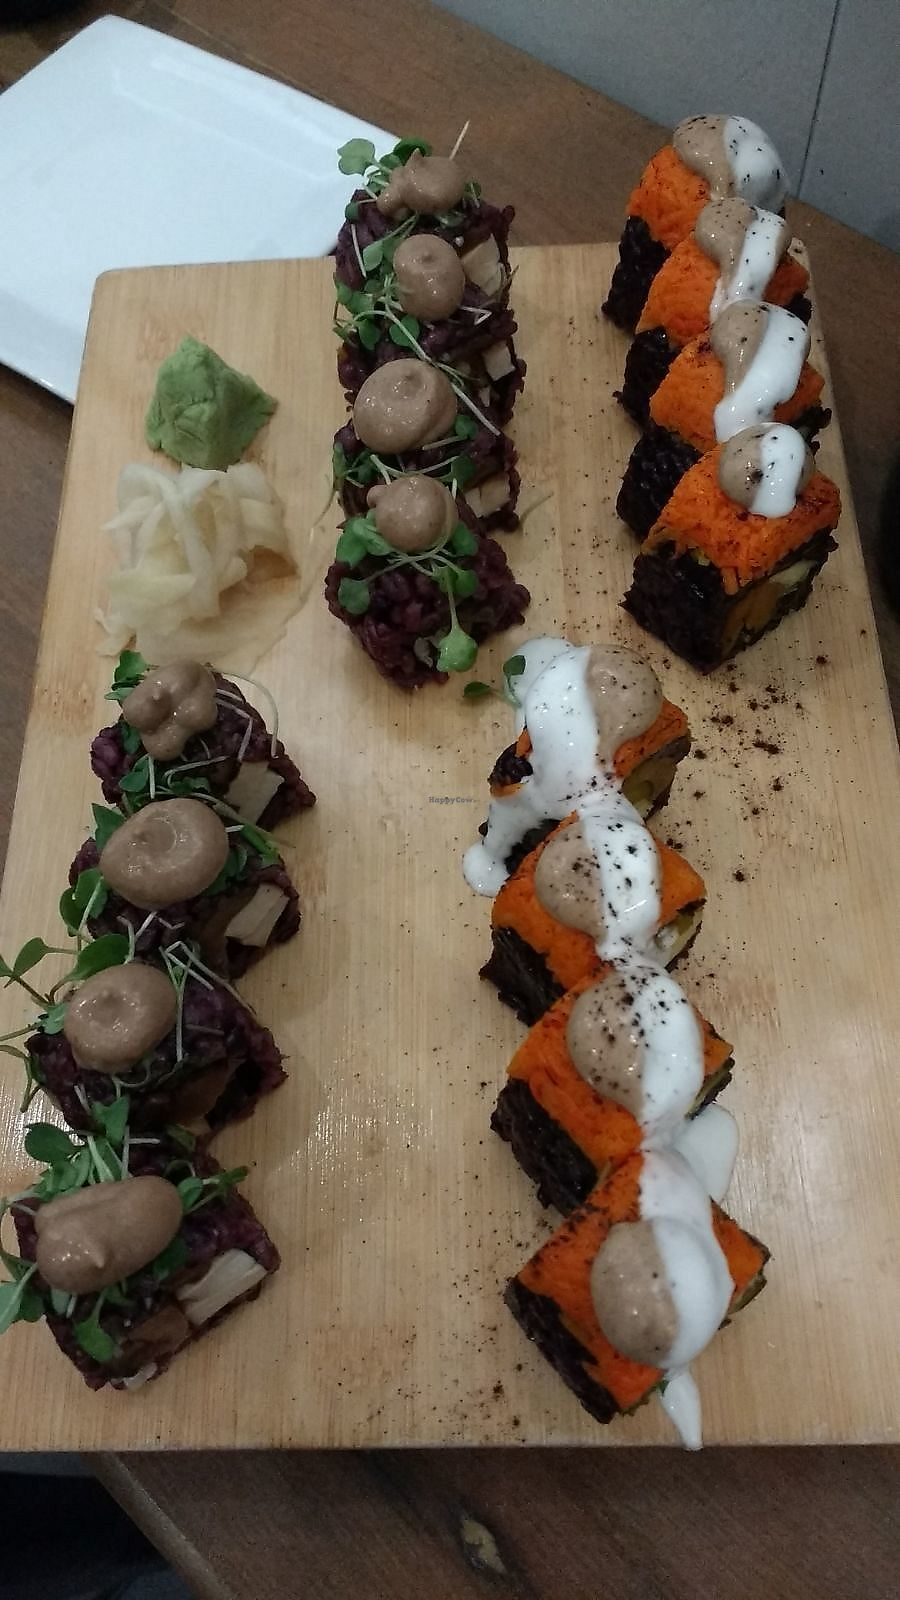 """Photo of Beyond Sushi - Midtown West  by <a href=""""/members/profile/Coralin"""">Coralin</a> <br/>Sushi <br/> November 9, 2017  - <a href='/contact/abuse/image/54327/323594'>Report</a>"""